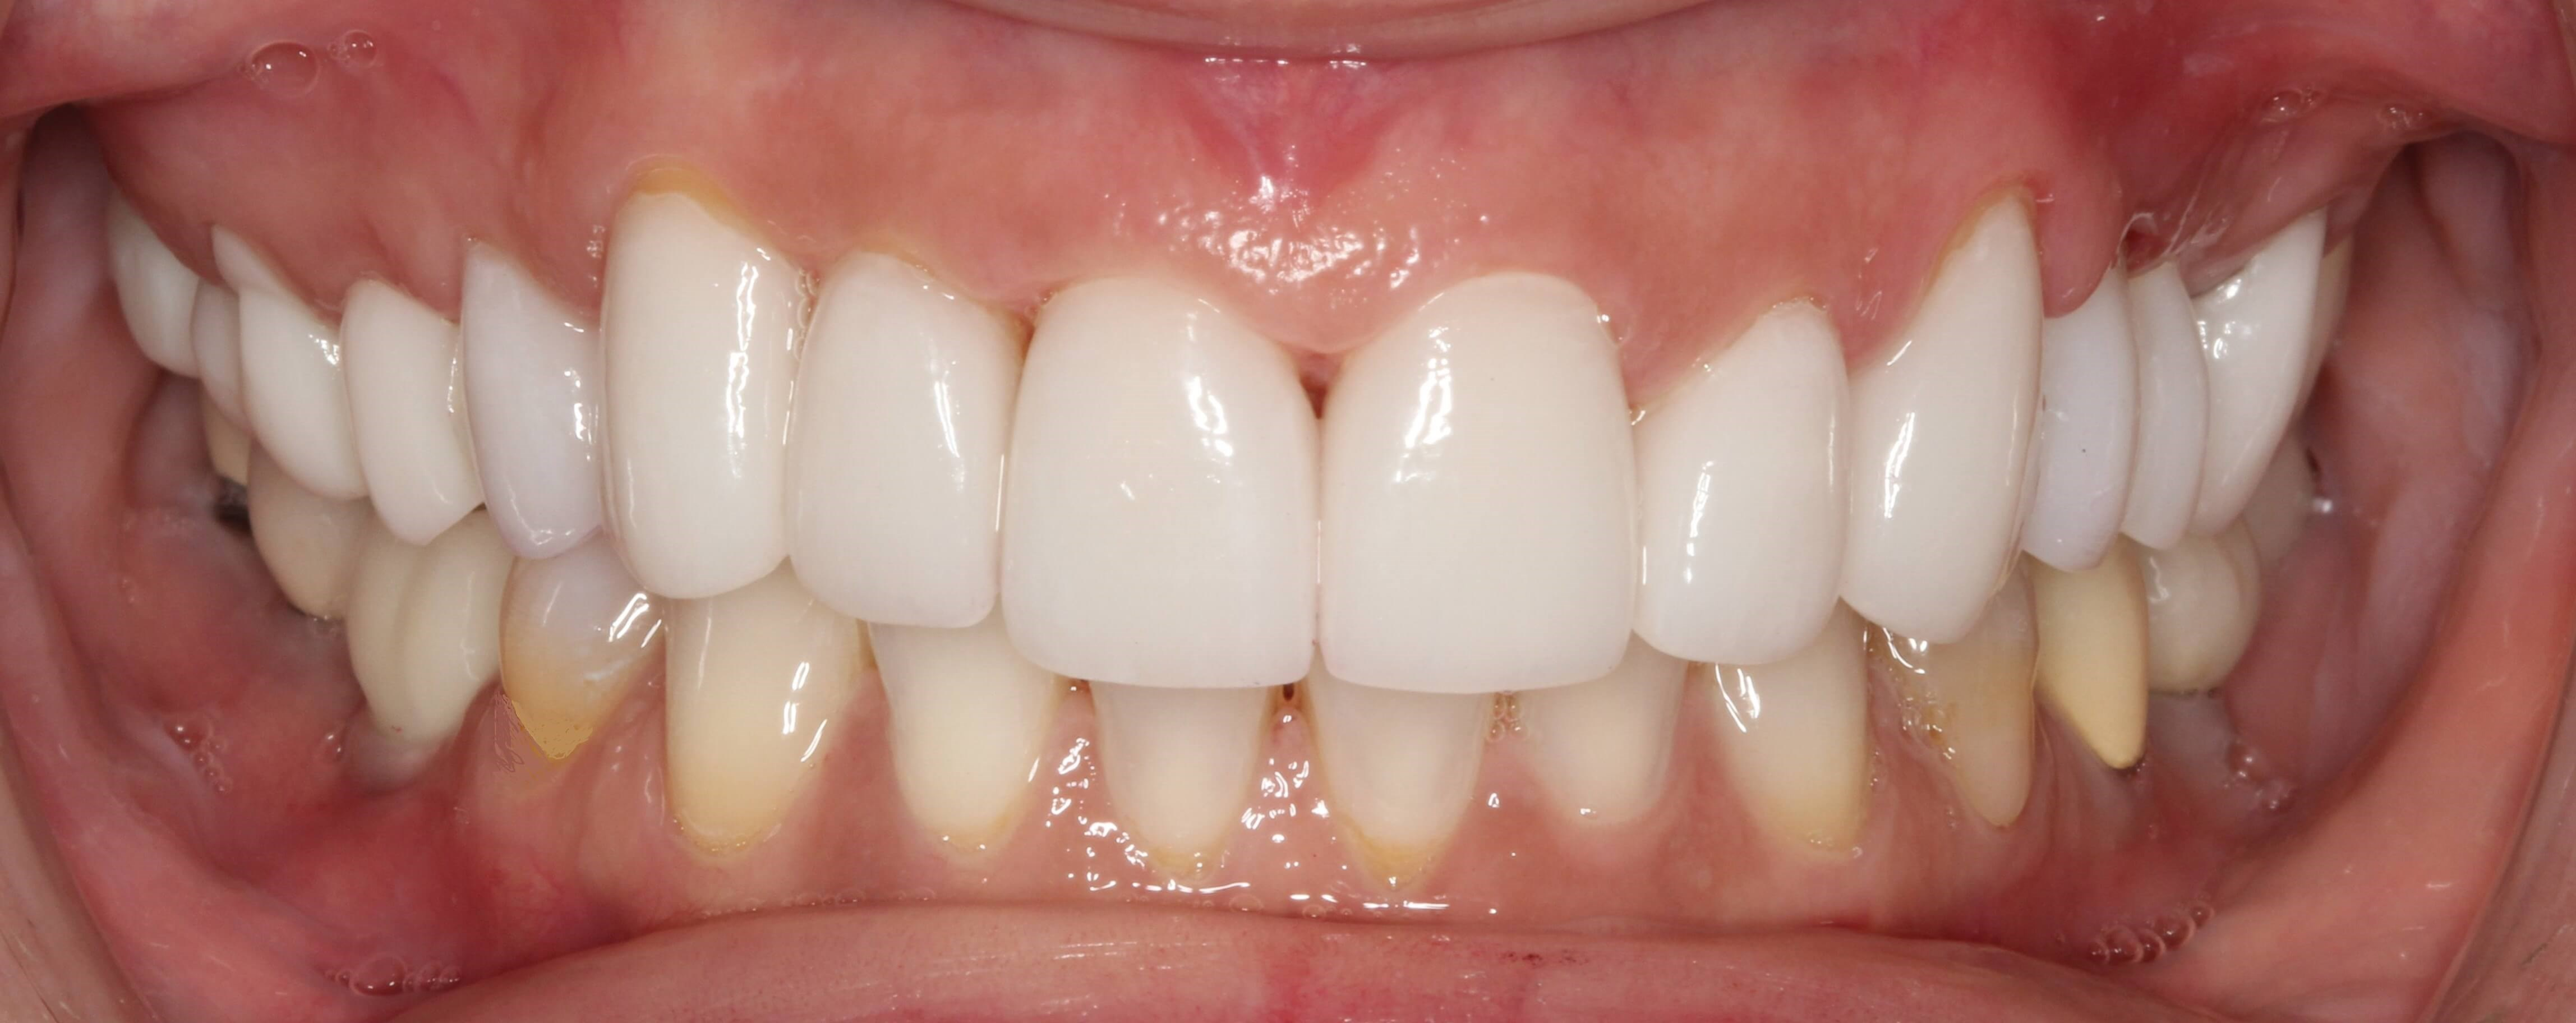 Implant Crown and Veneer Case After